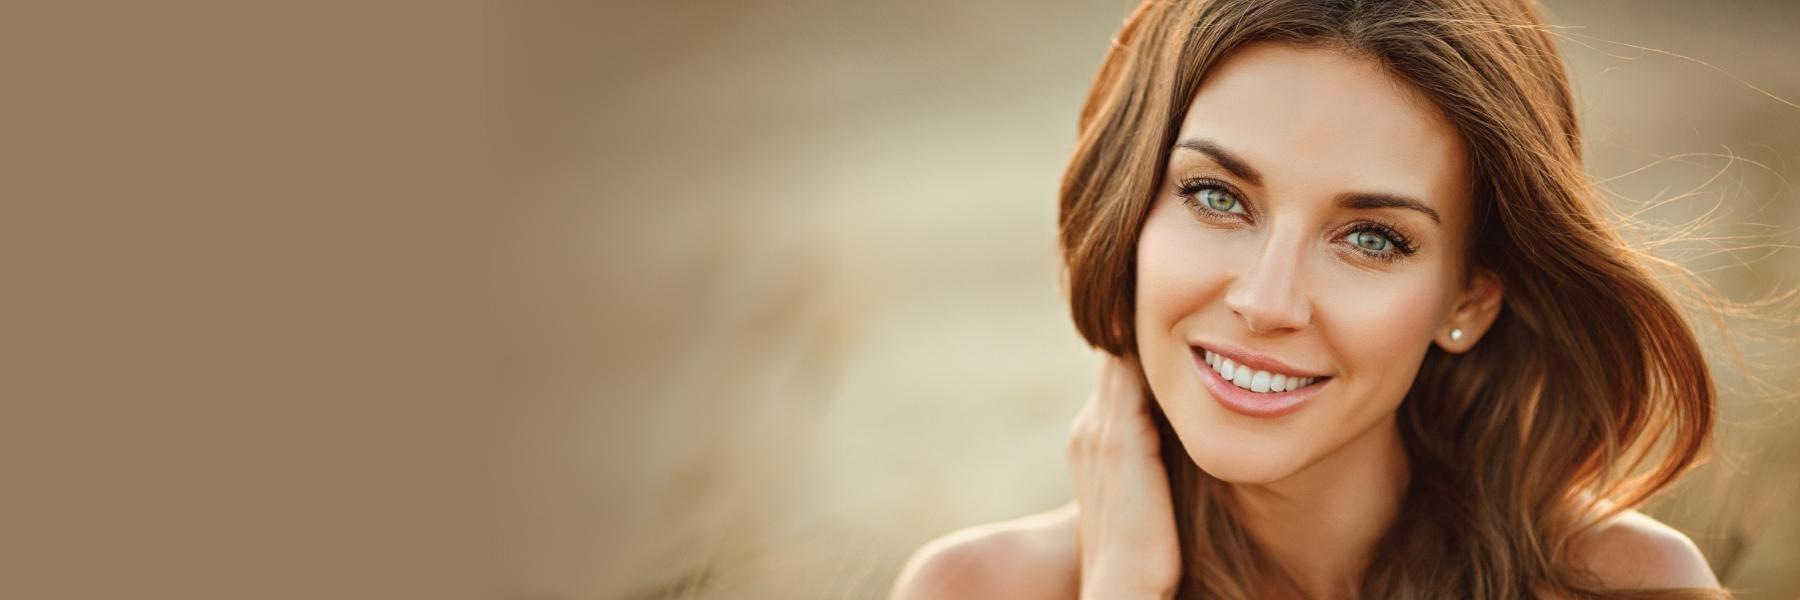 Woman smiling | Dentist Chesterfield MO